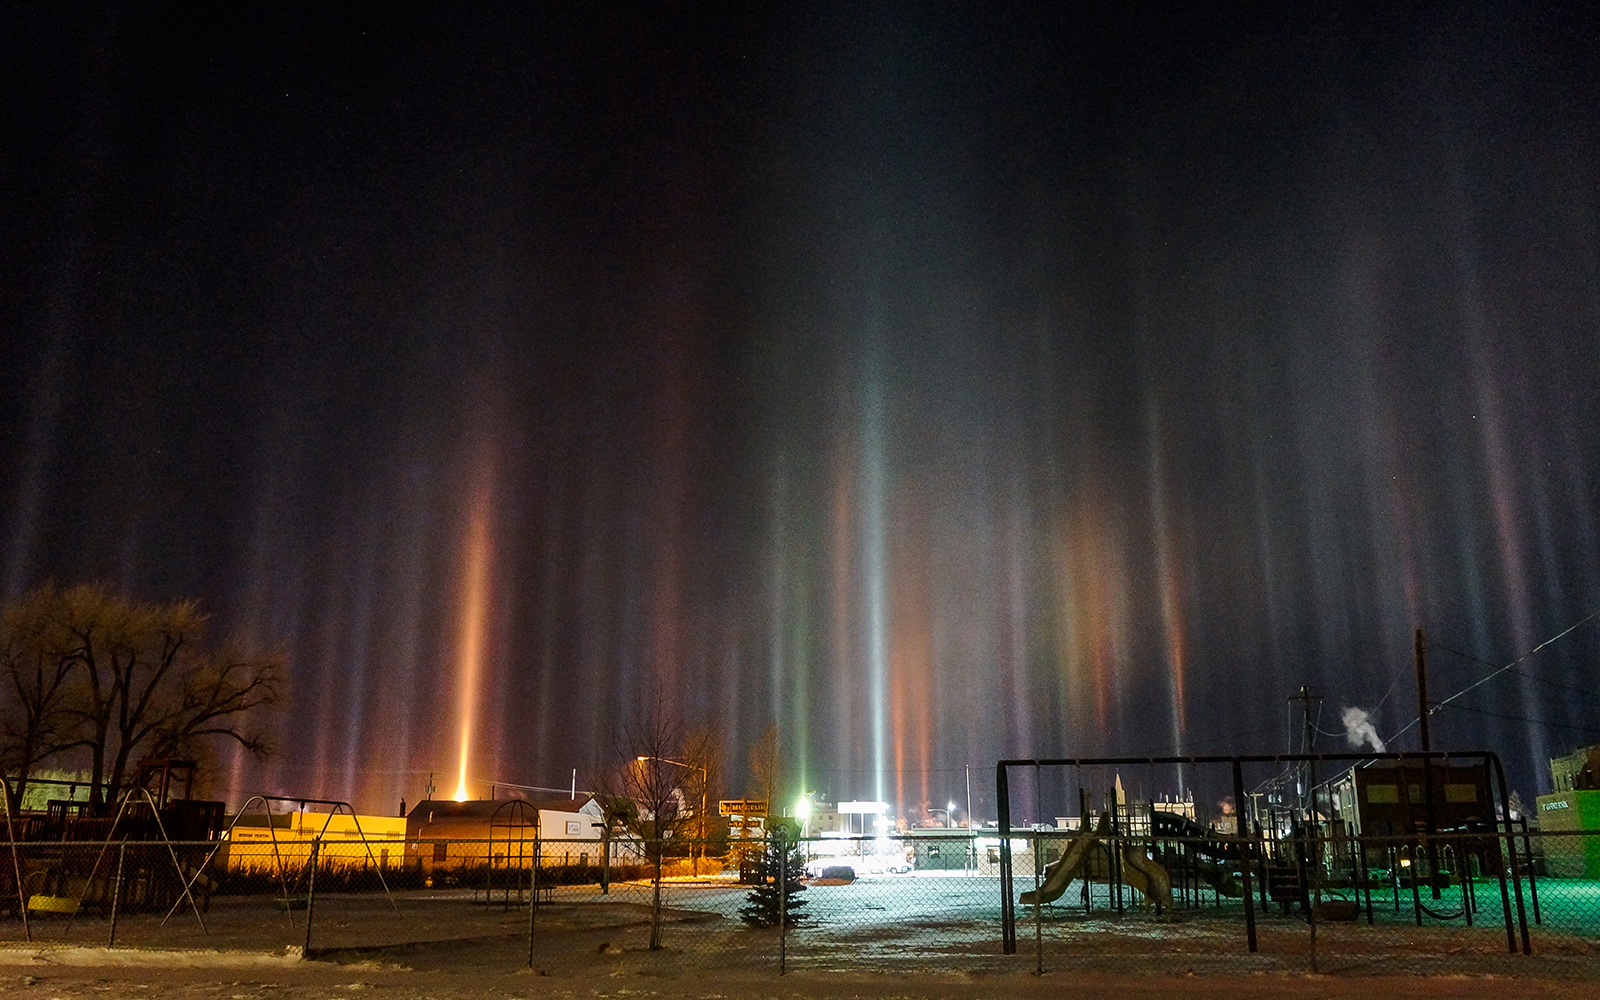 Nature's Spectacular Light Shows: Light Poles in very cold cities like Laramie, Wyoming